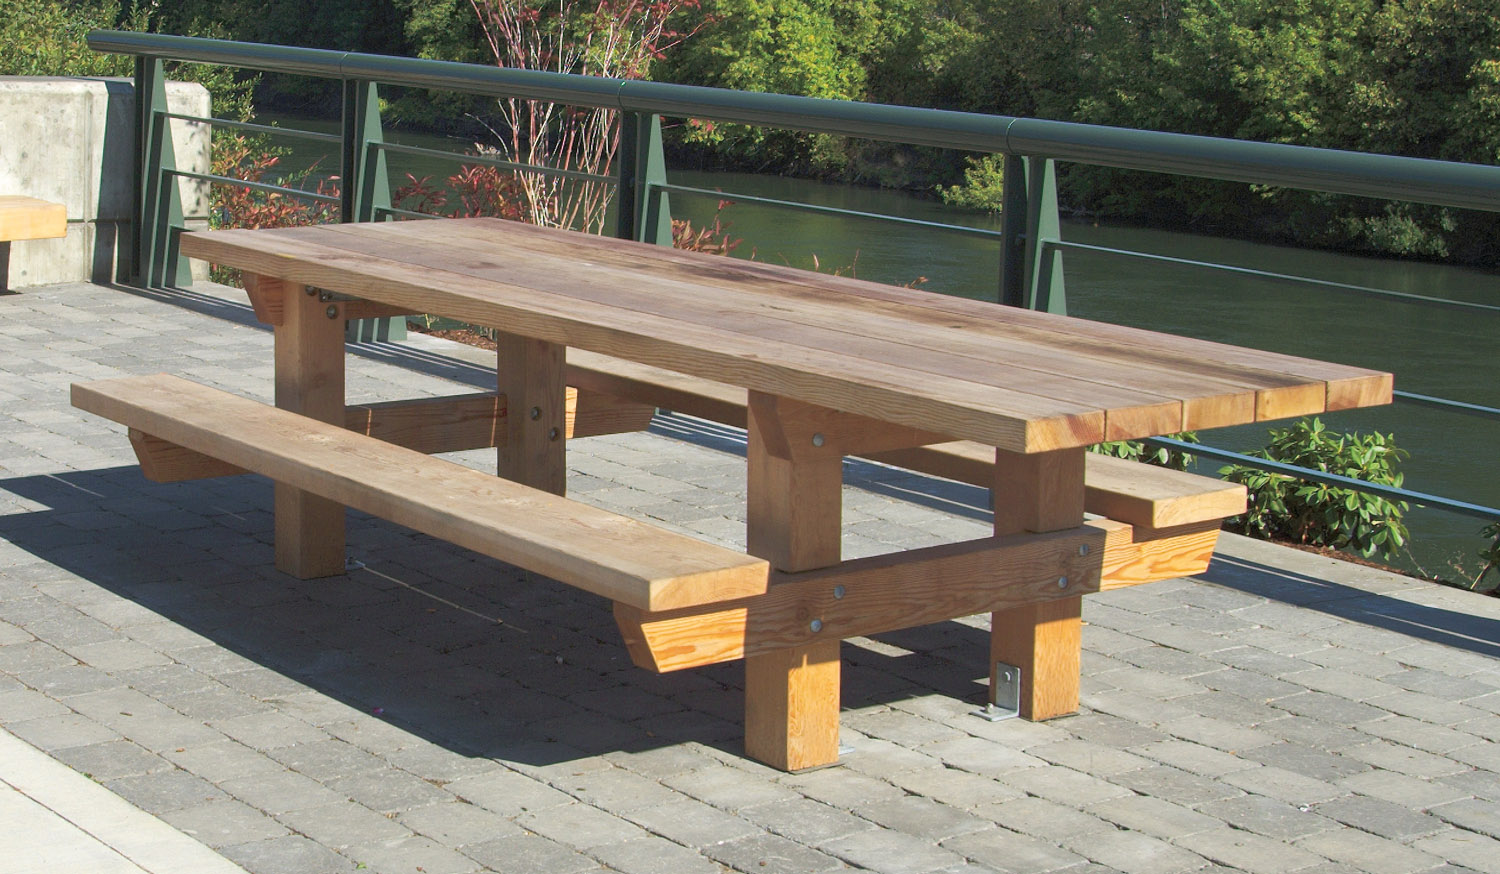 picnic table plans picnic table plans round wooden picnic table round ...